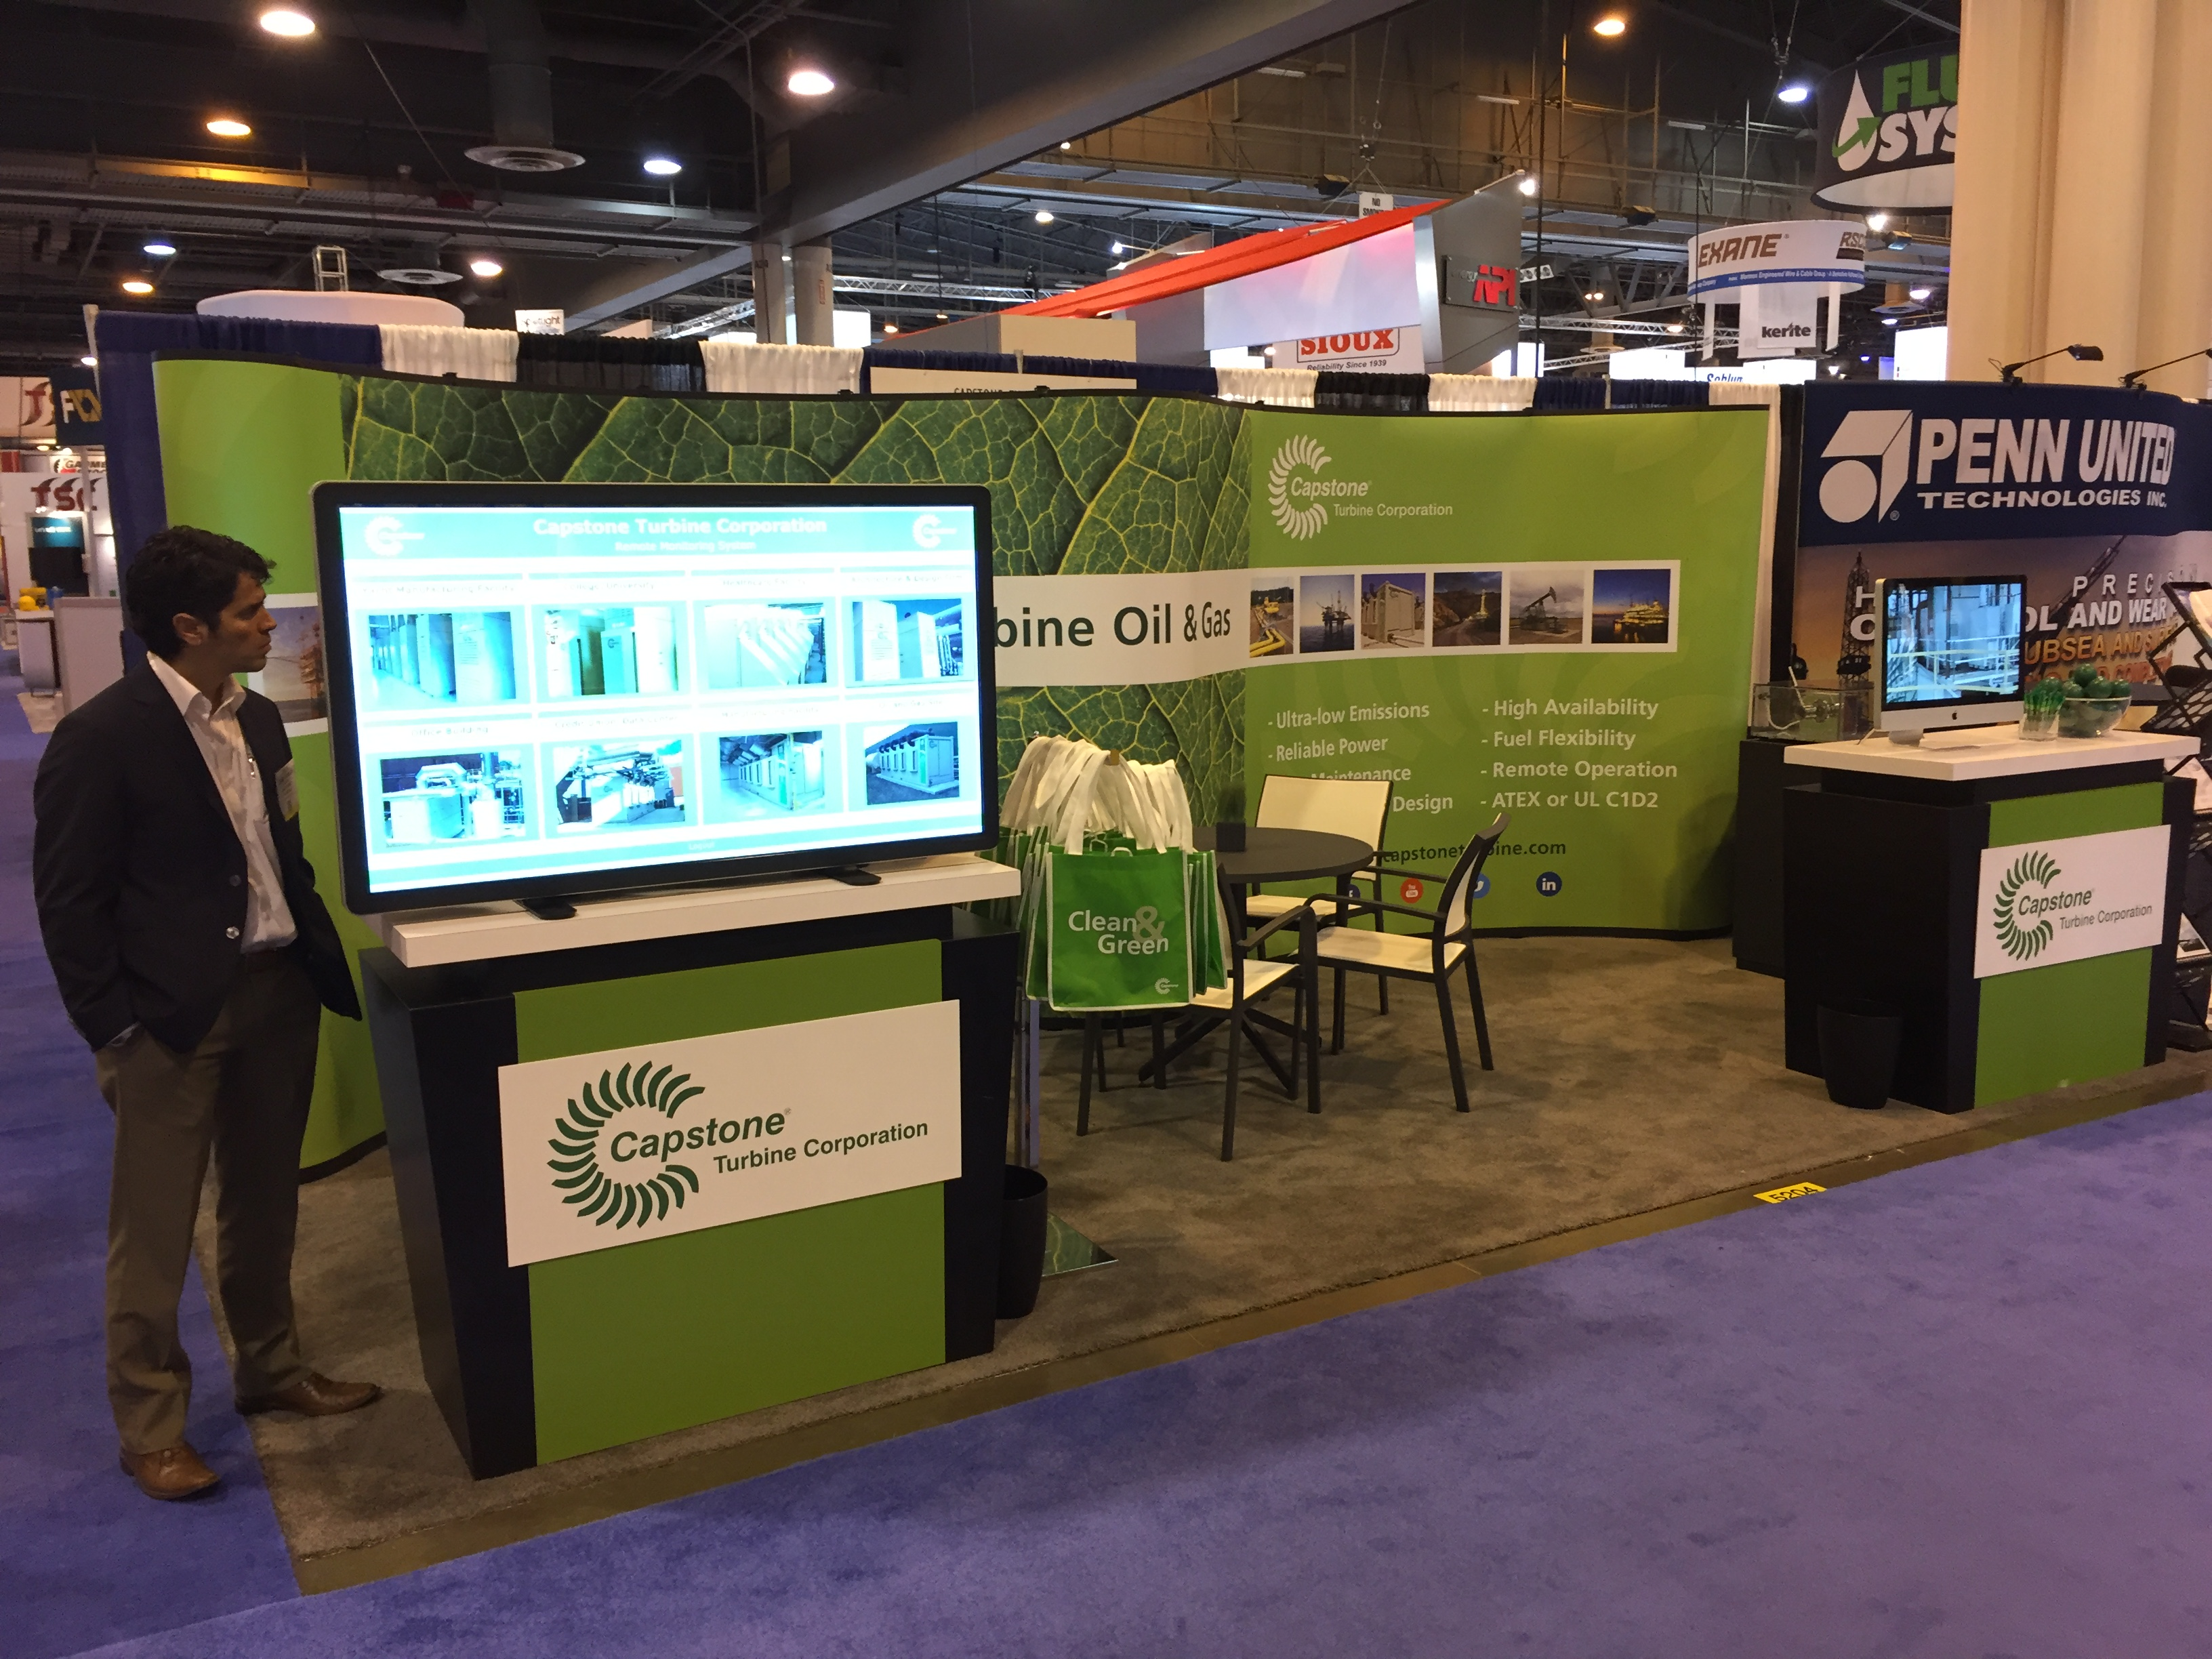 Capstone at Offshore Technology Conference 2016